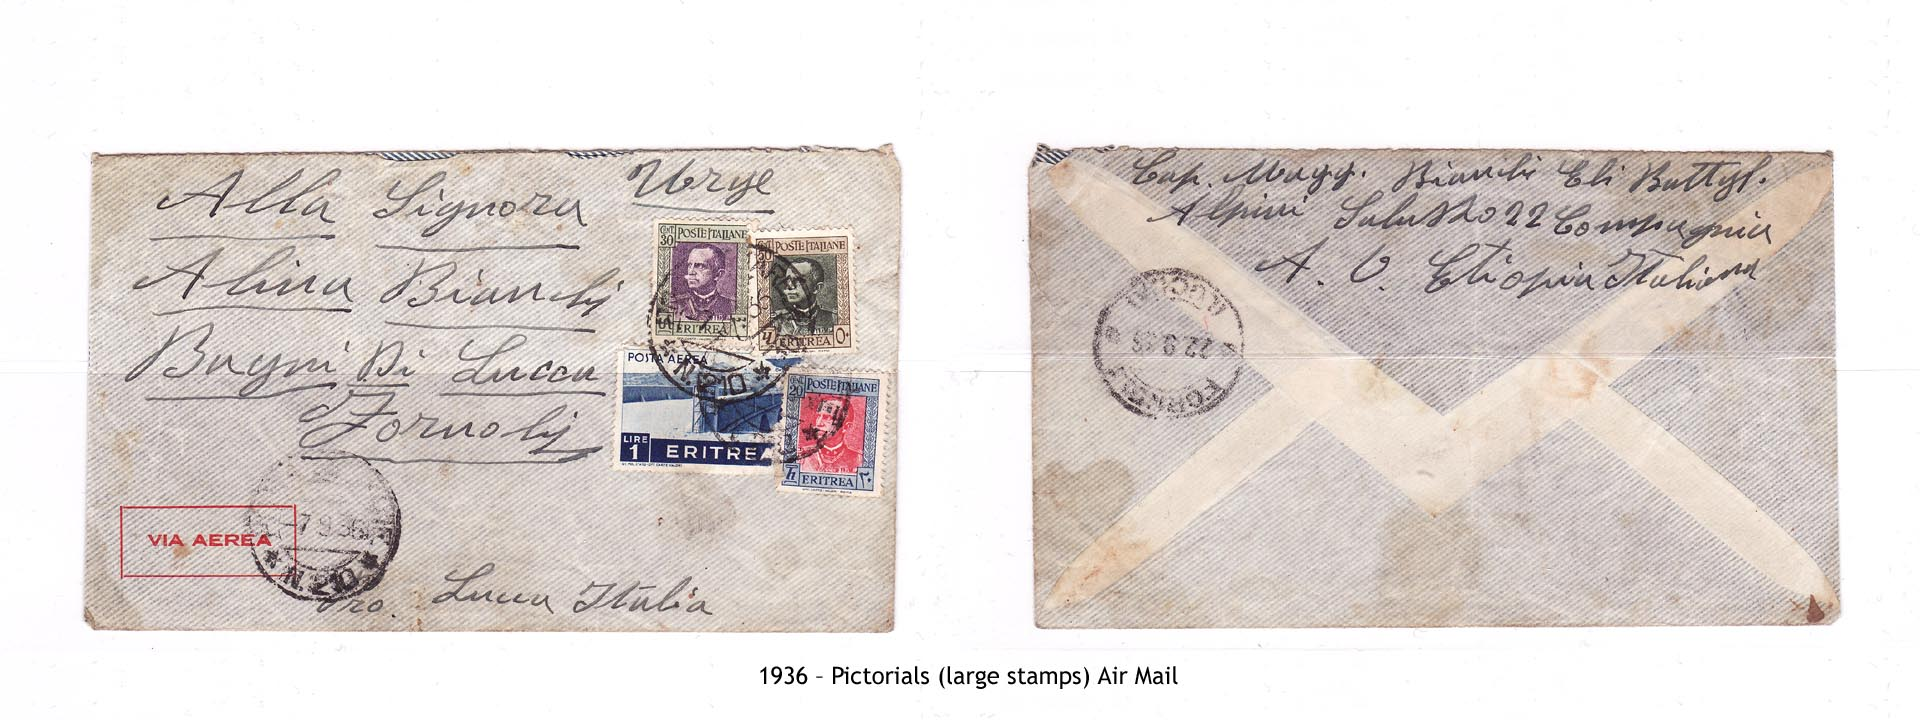 1936 – Eritrea Pictorials (large stamps) Air Mail